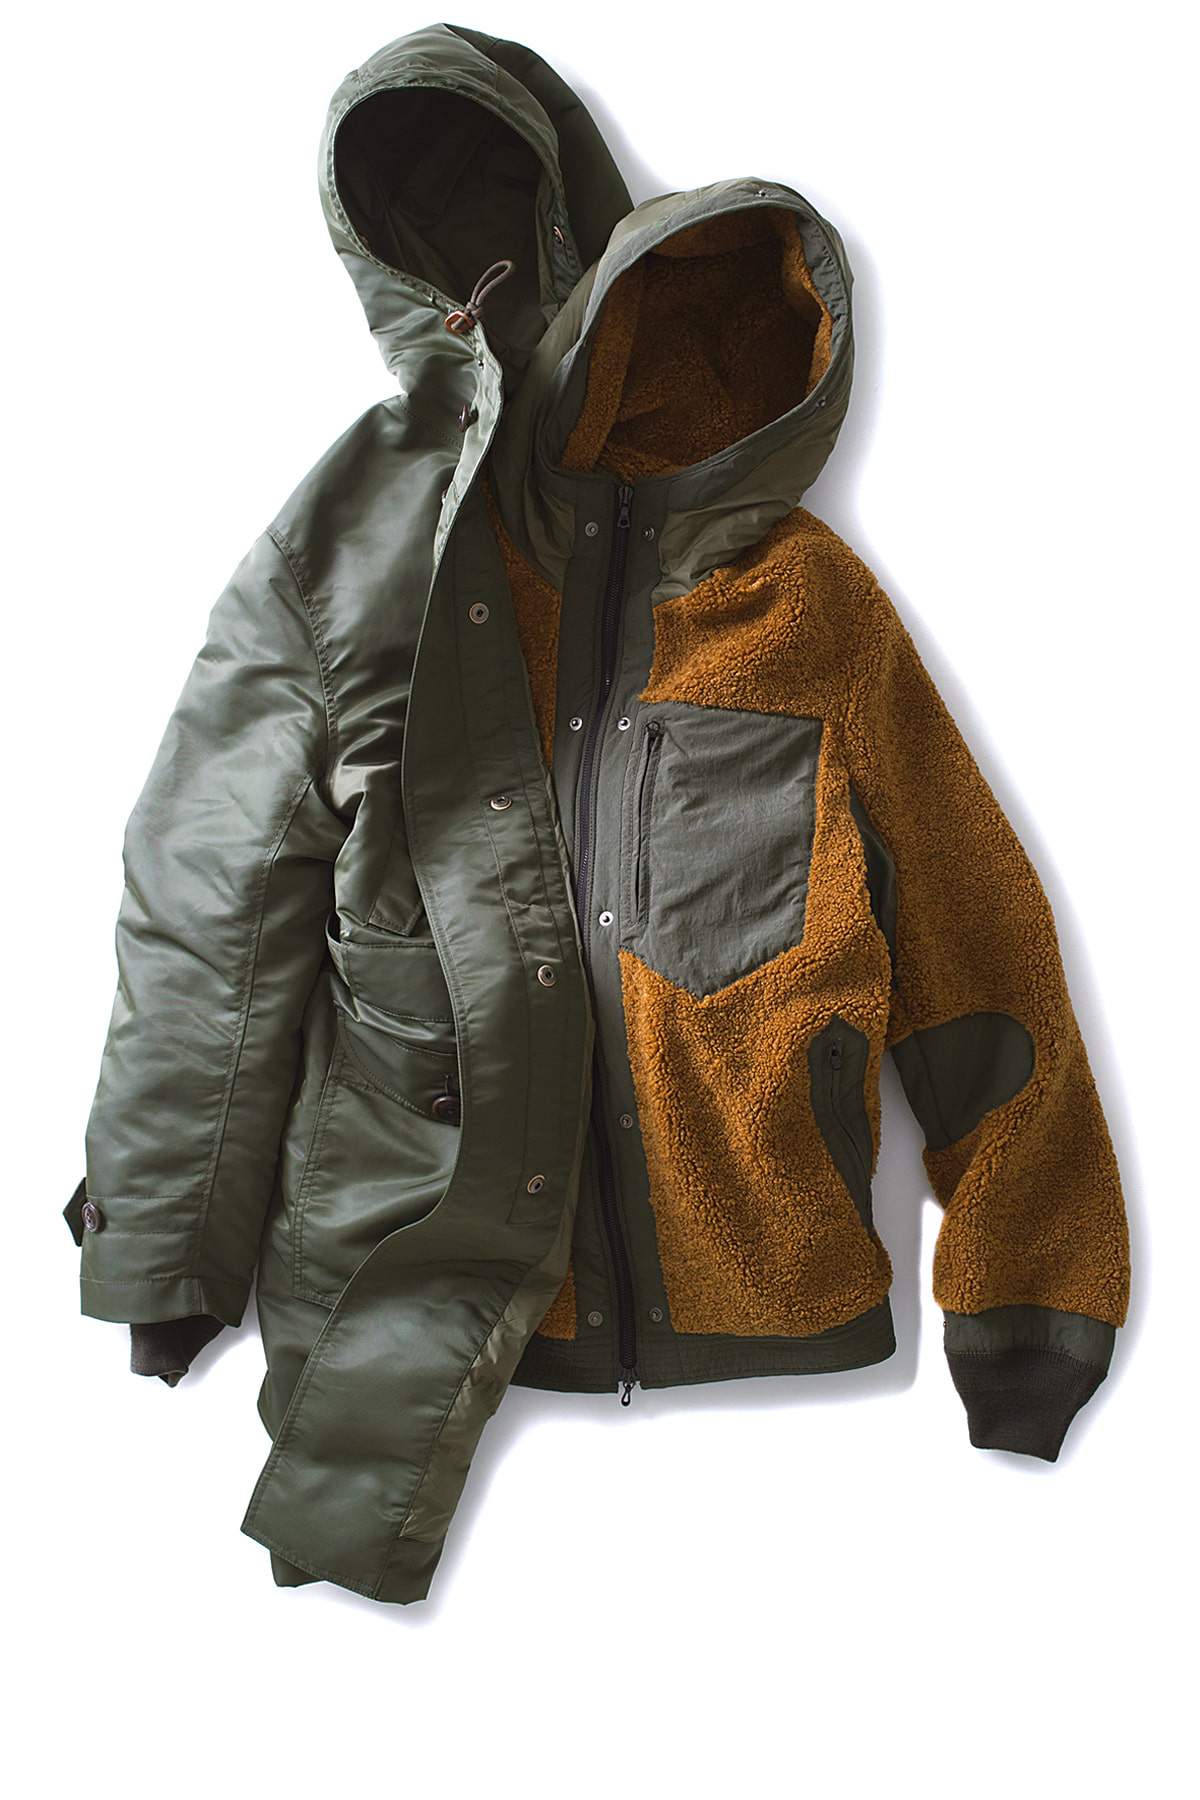 Eastlogue : Chongjin Battle Parka (Olive Nylon)